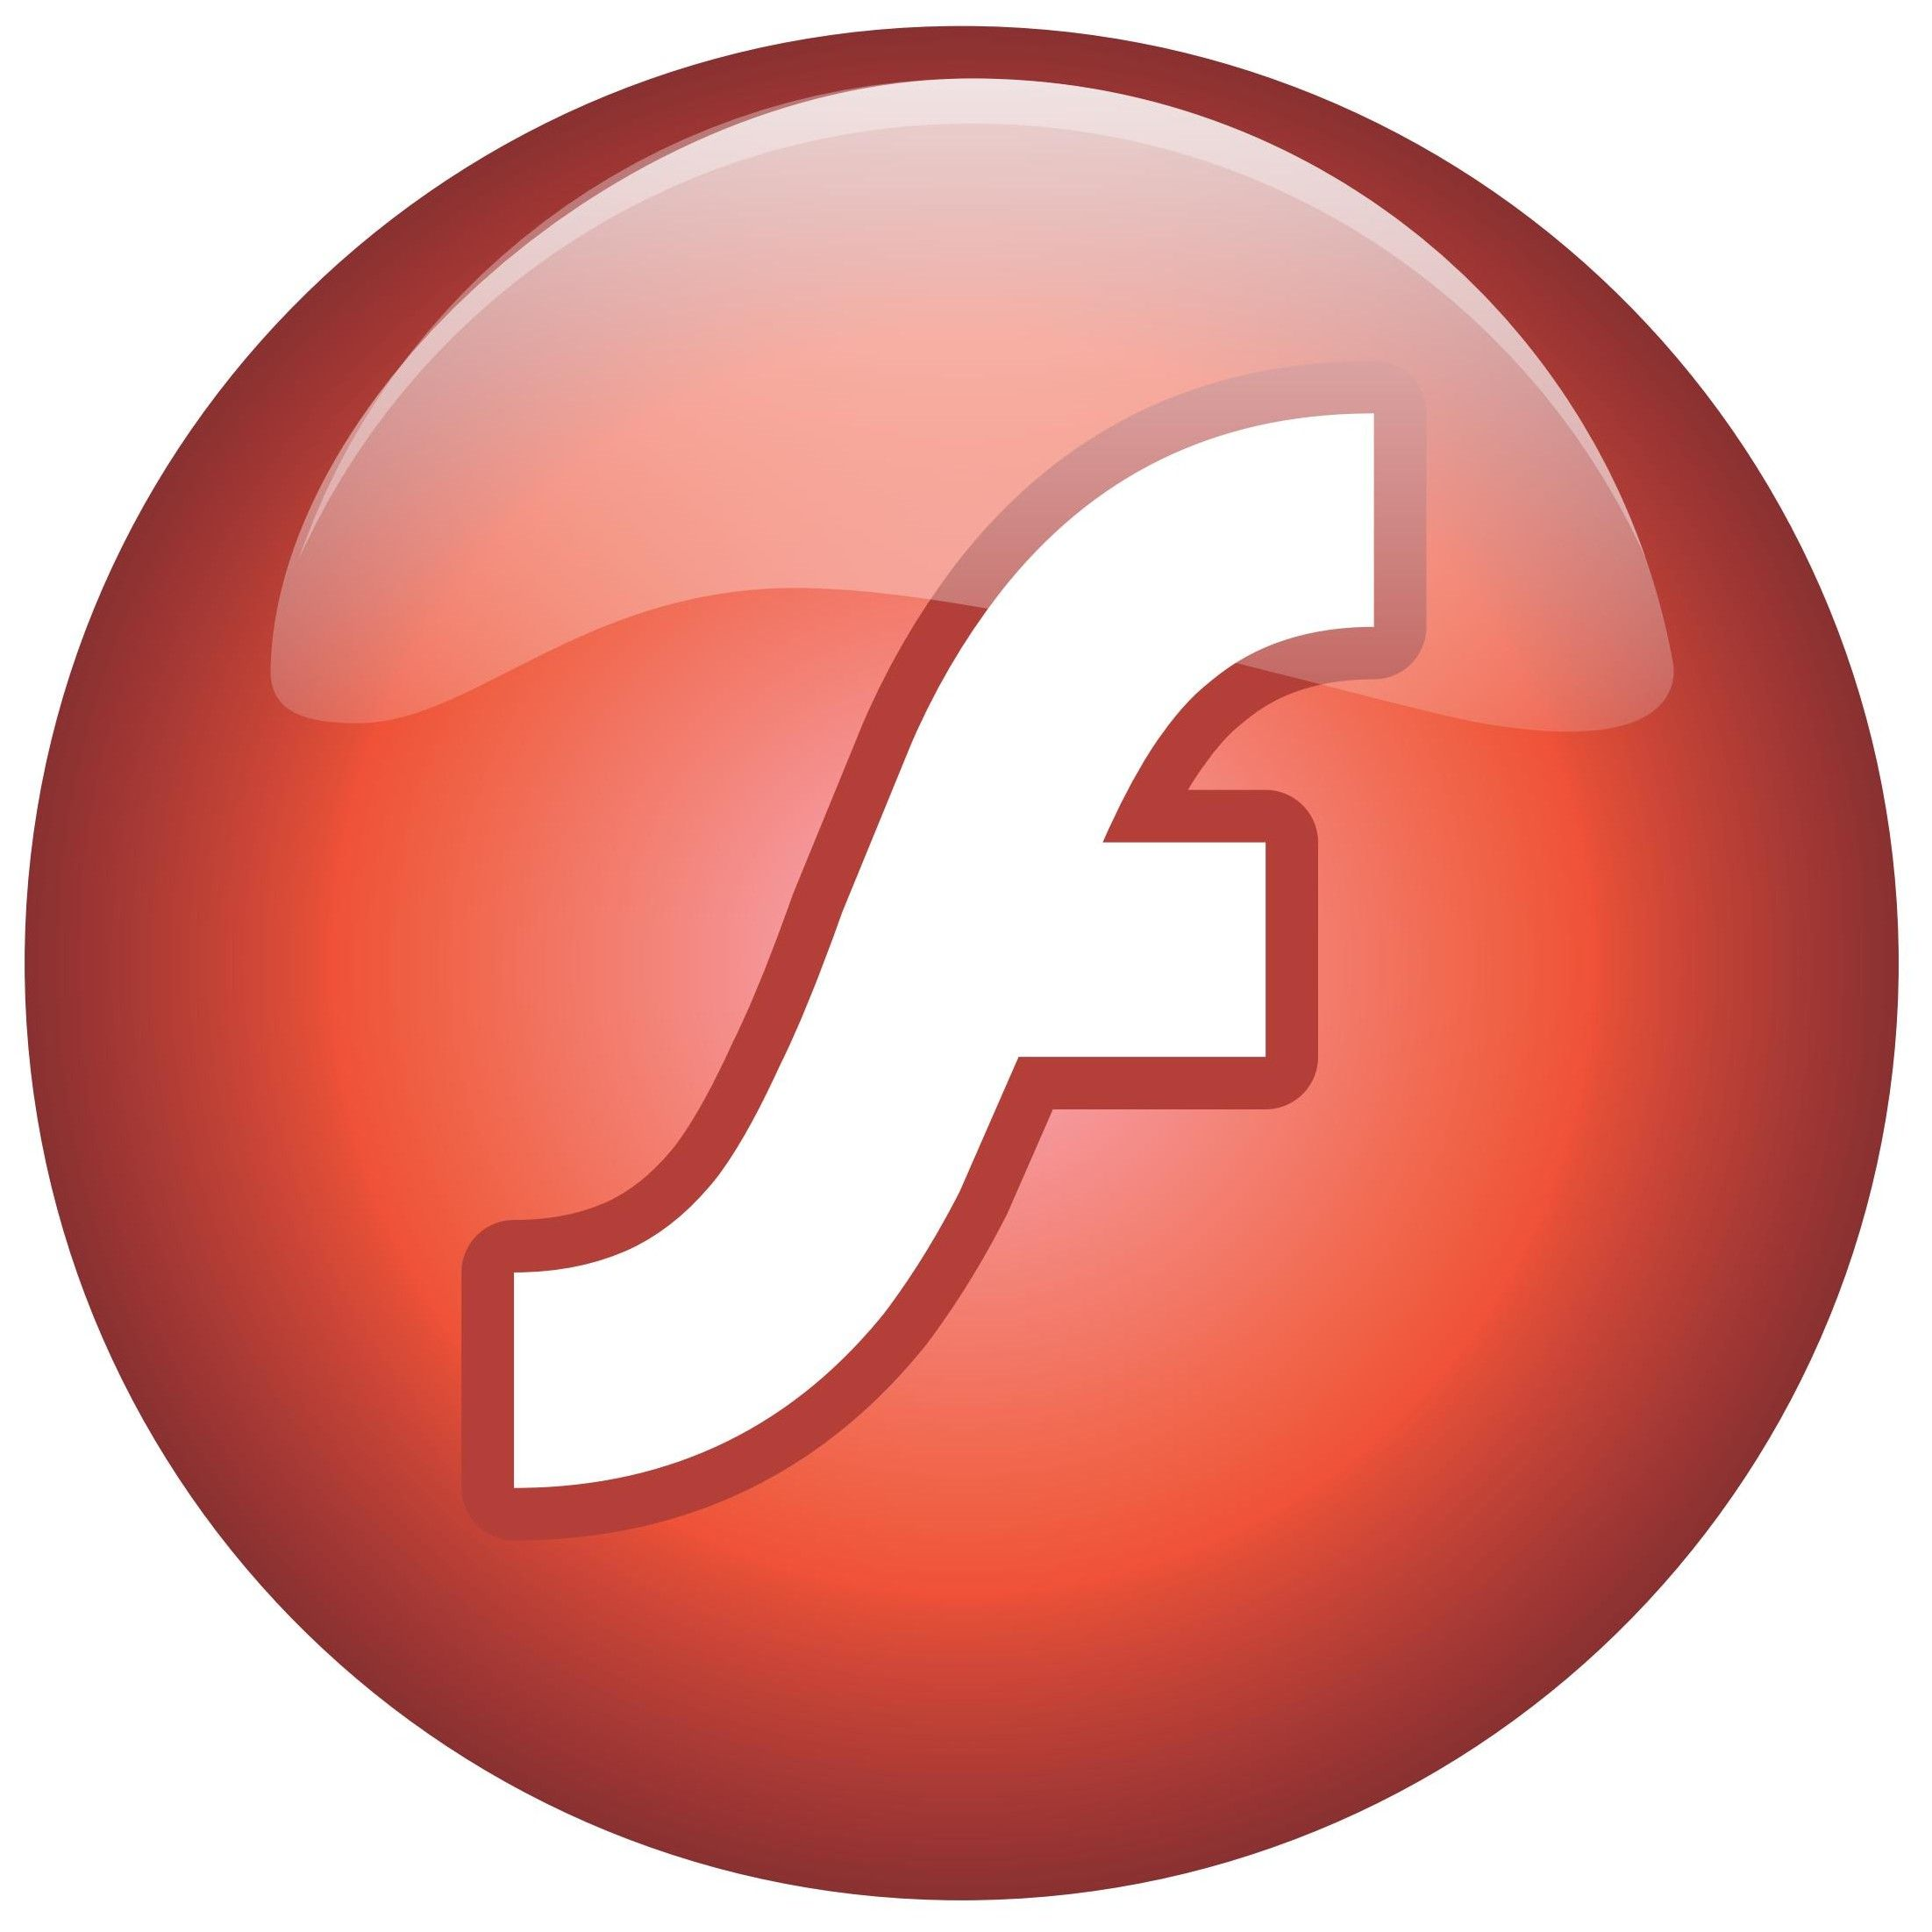 Adobe Flash Logo [EPS File] Vector EPS Free Download, Logo, Icons, Brand Emblems | Flash logo, Computers for sale, Interactive